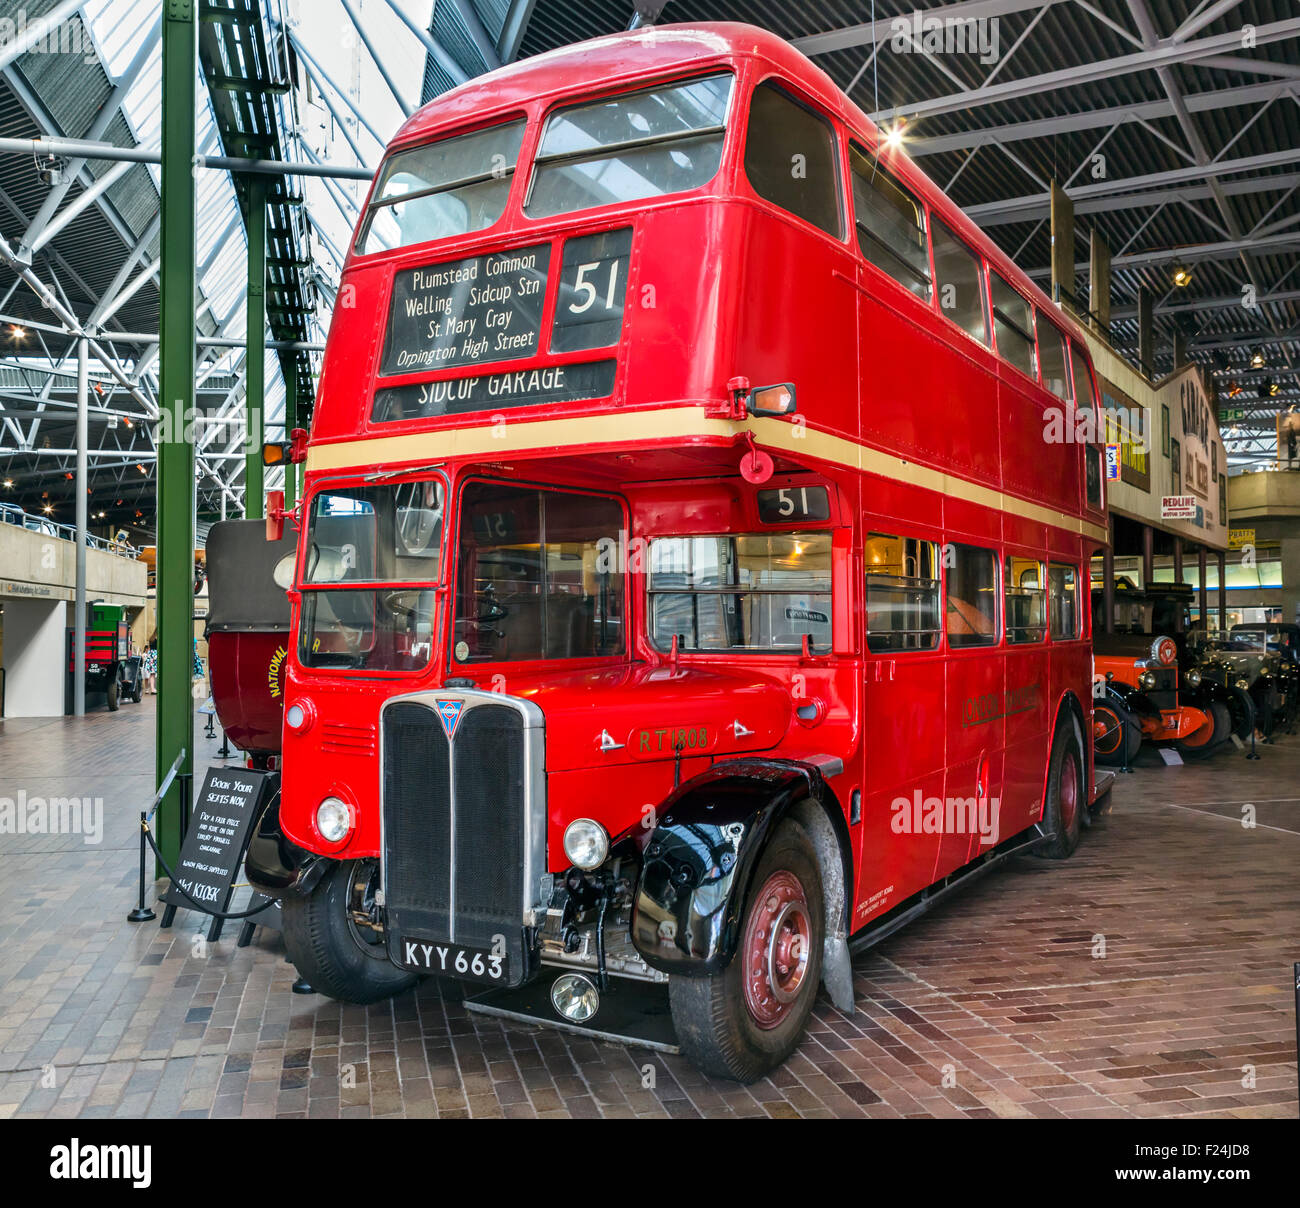 1950s bus stock photos 1950s bus stock images alamy for National motor club compensation plan